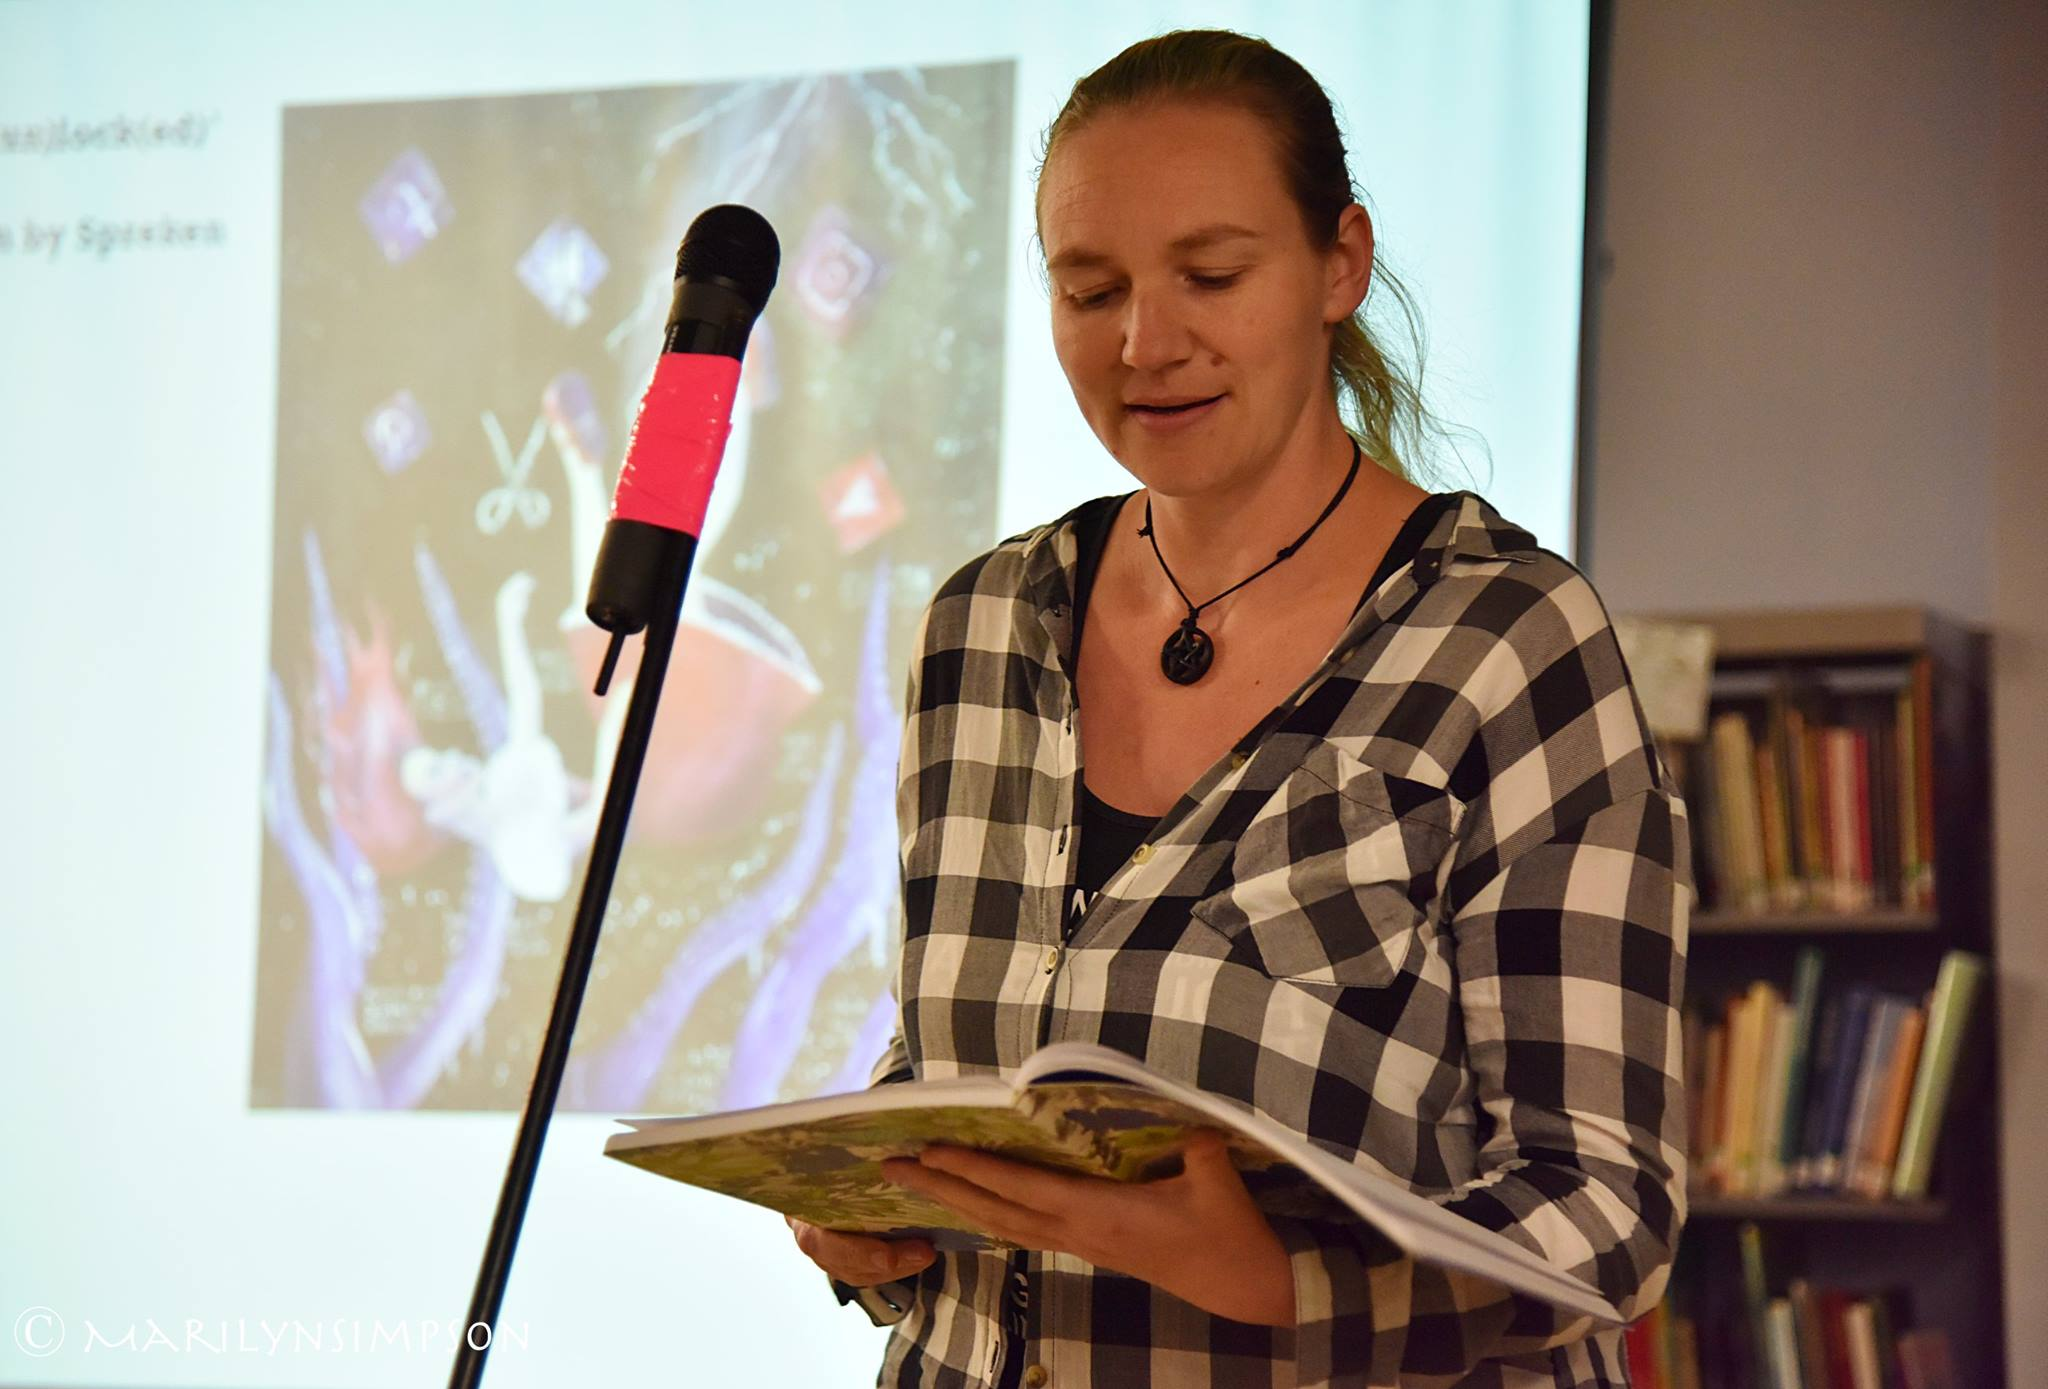 Spreken reading at the launch